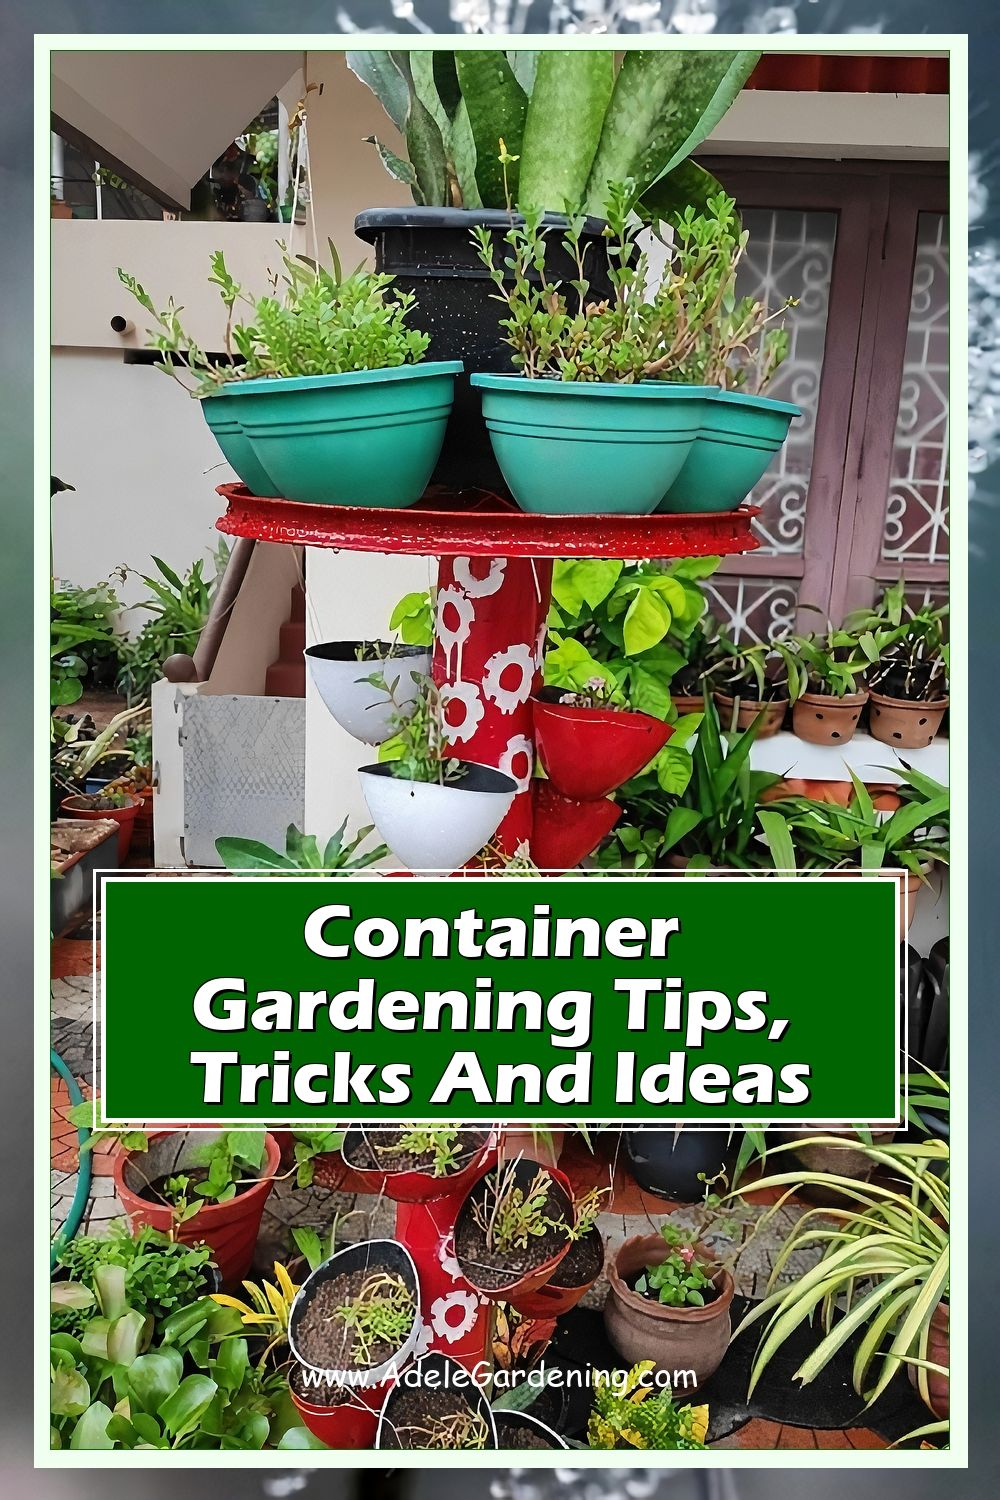 Gardening for beginners: container gardening. Find out how to create the best possible conditions for plants growing in pots and containers.